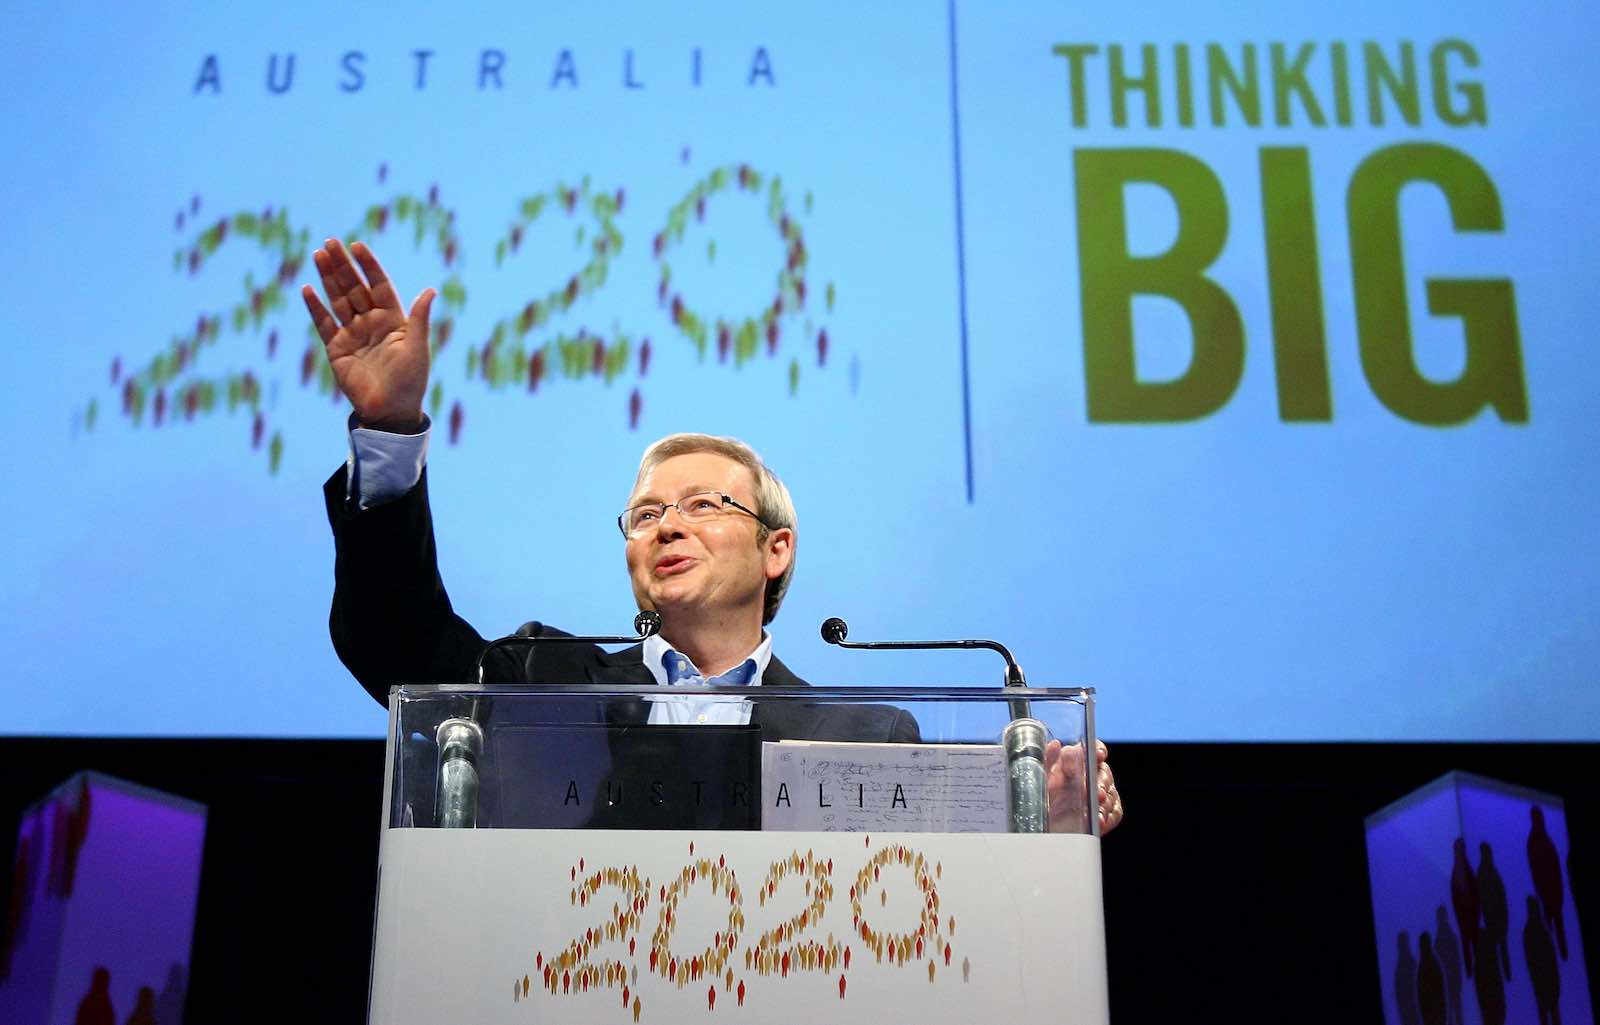 Kevin Rudd, then Prime Minister, opens day one of the Australia 2020 Summit held at Parliament House, Canberra, 19 April 2008 (Mark Nolan/Getty Images)